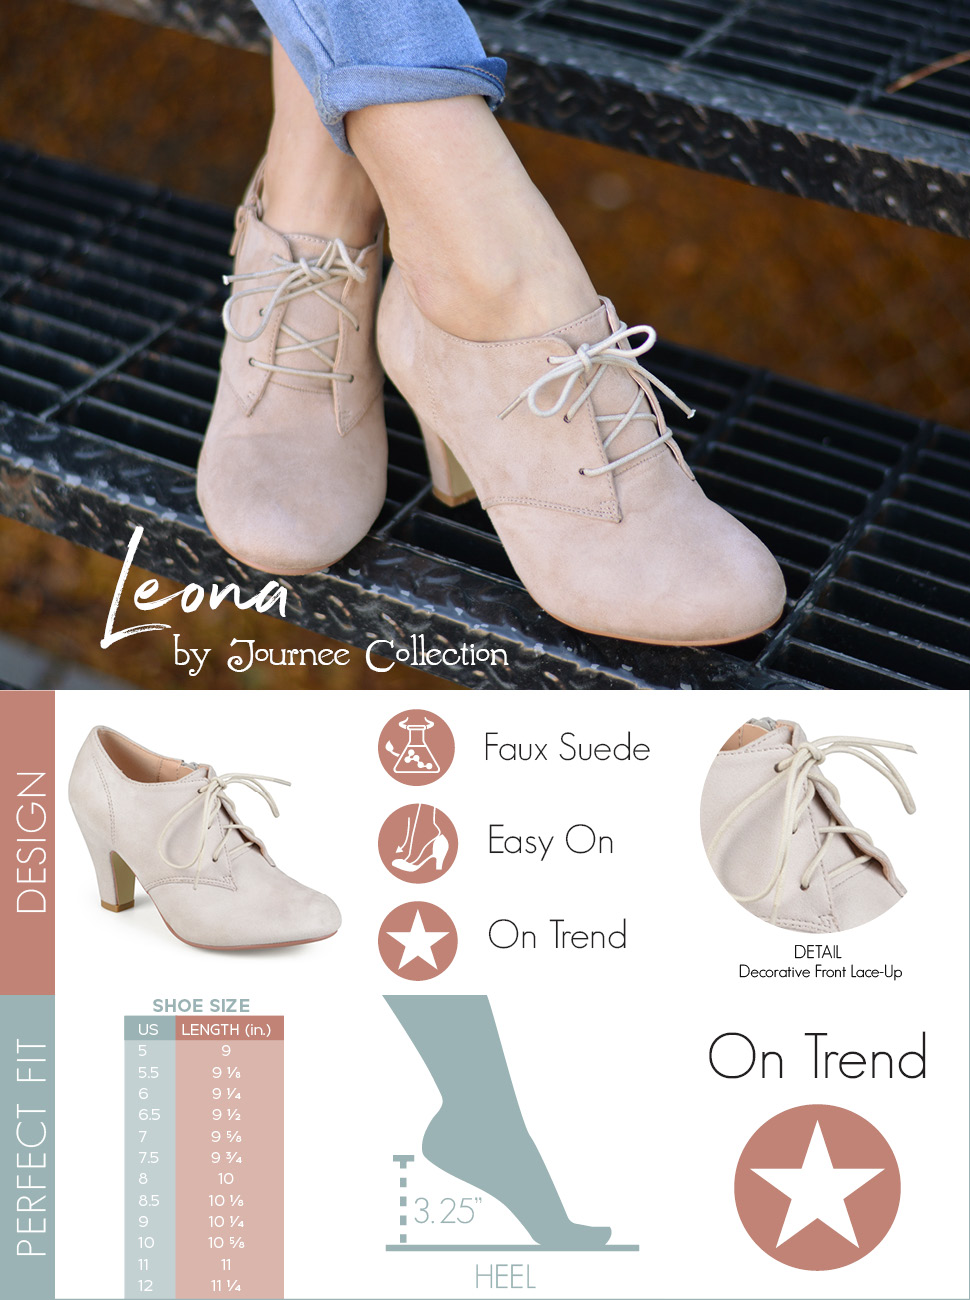 Journee Collection Leona ... Women's Oxford High Heels best place for sale 0dW0i5V